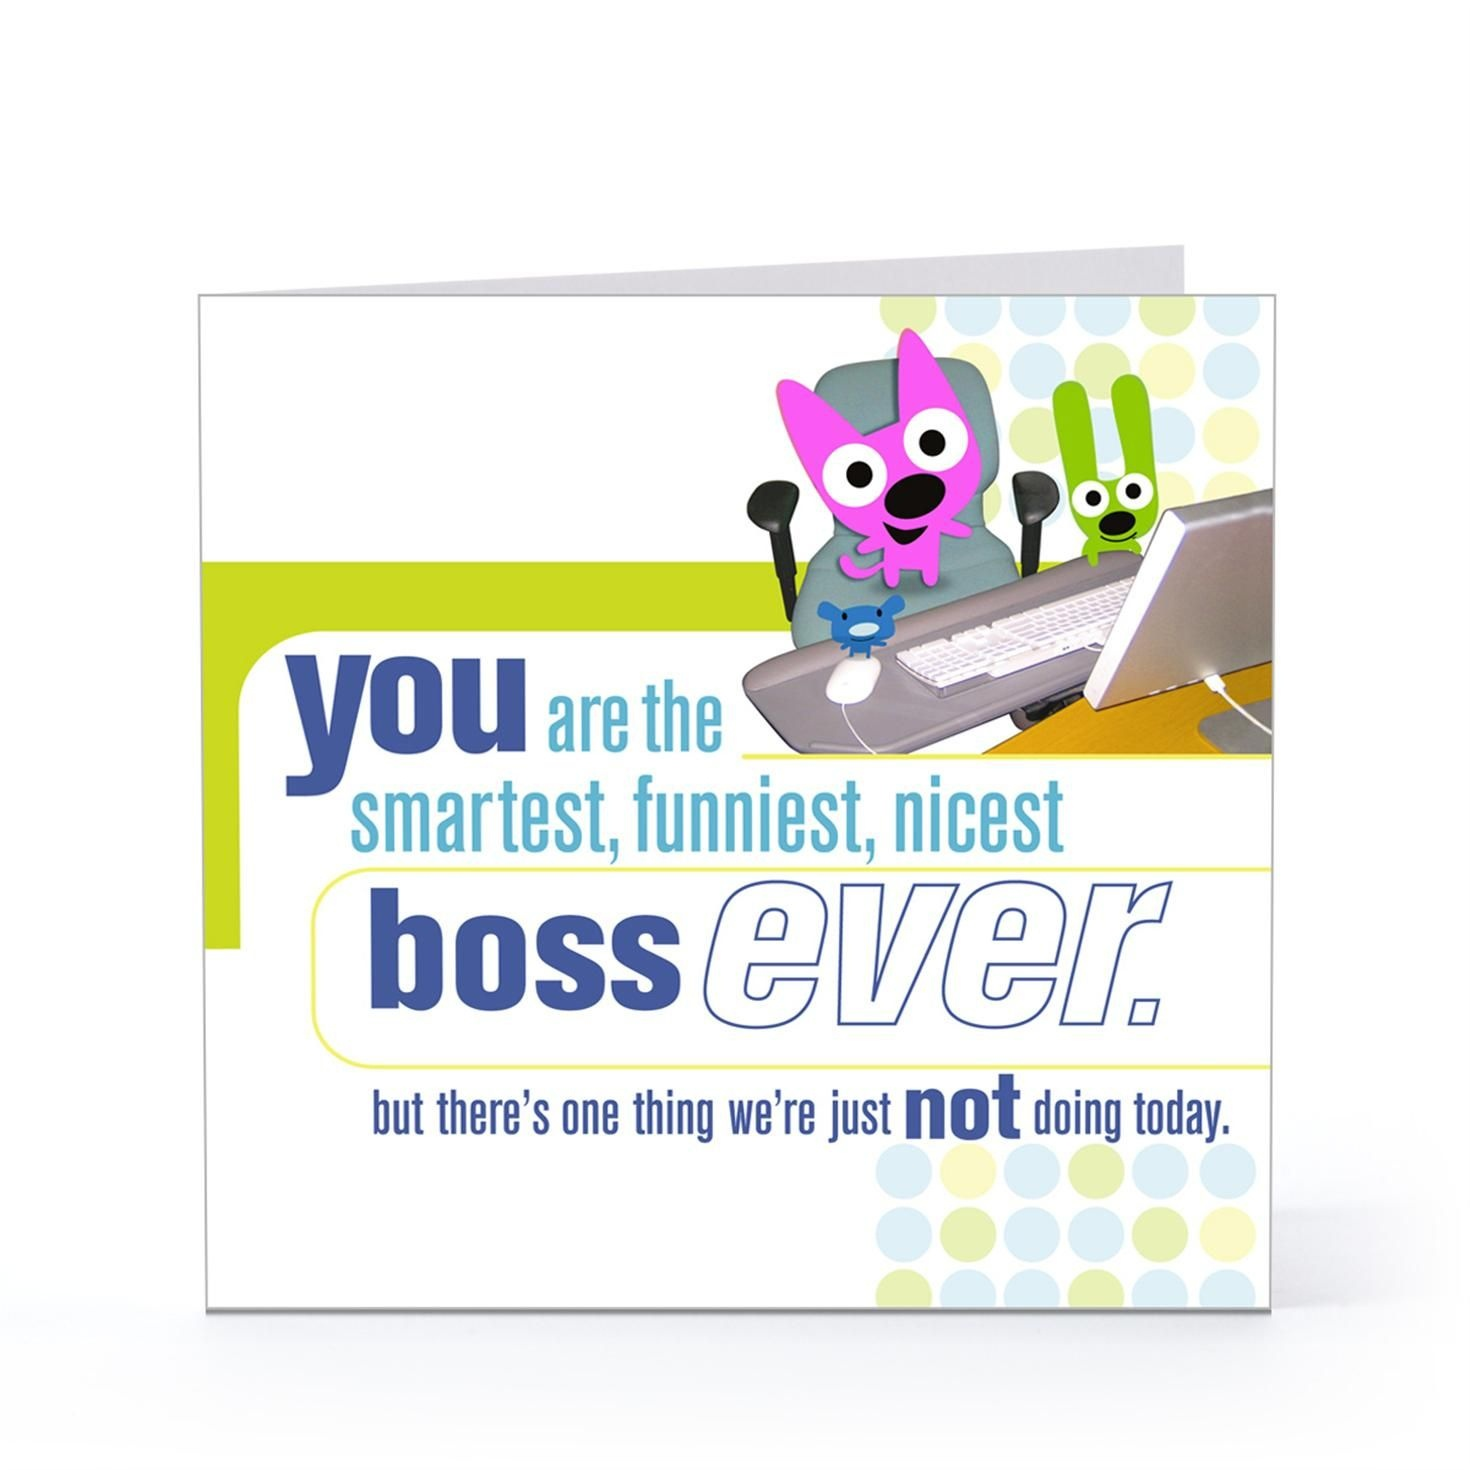 Boss Day Quotes For Facebook | Happy Boss Day Quotes Funny | Boss - Free Printable Funny Boss Day Cards